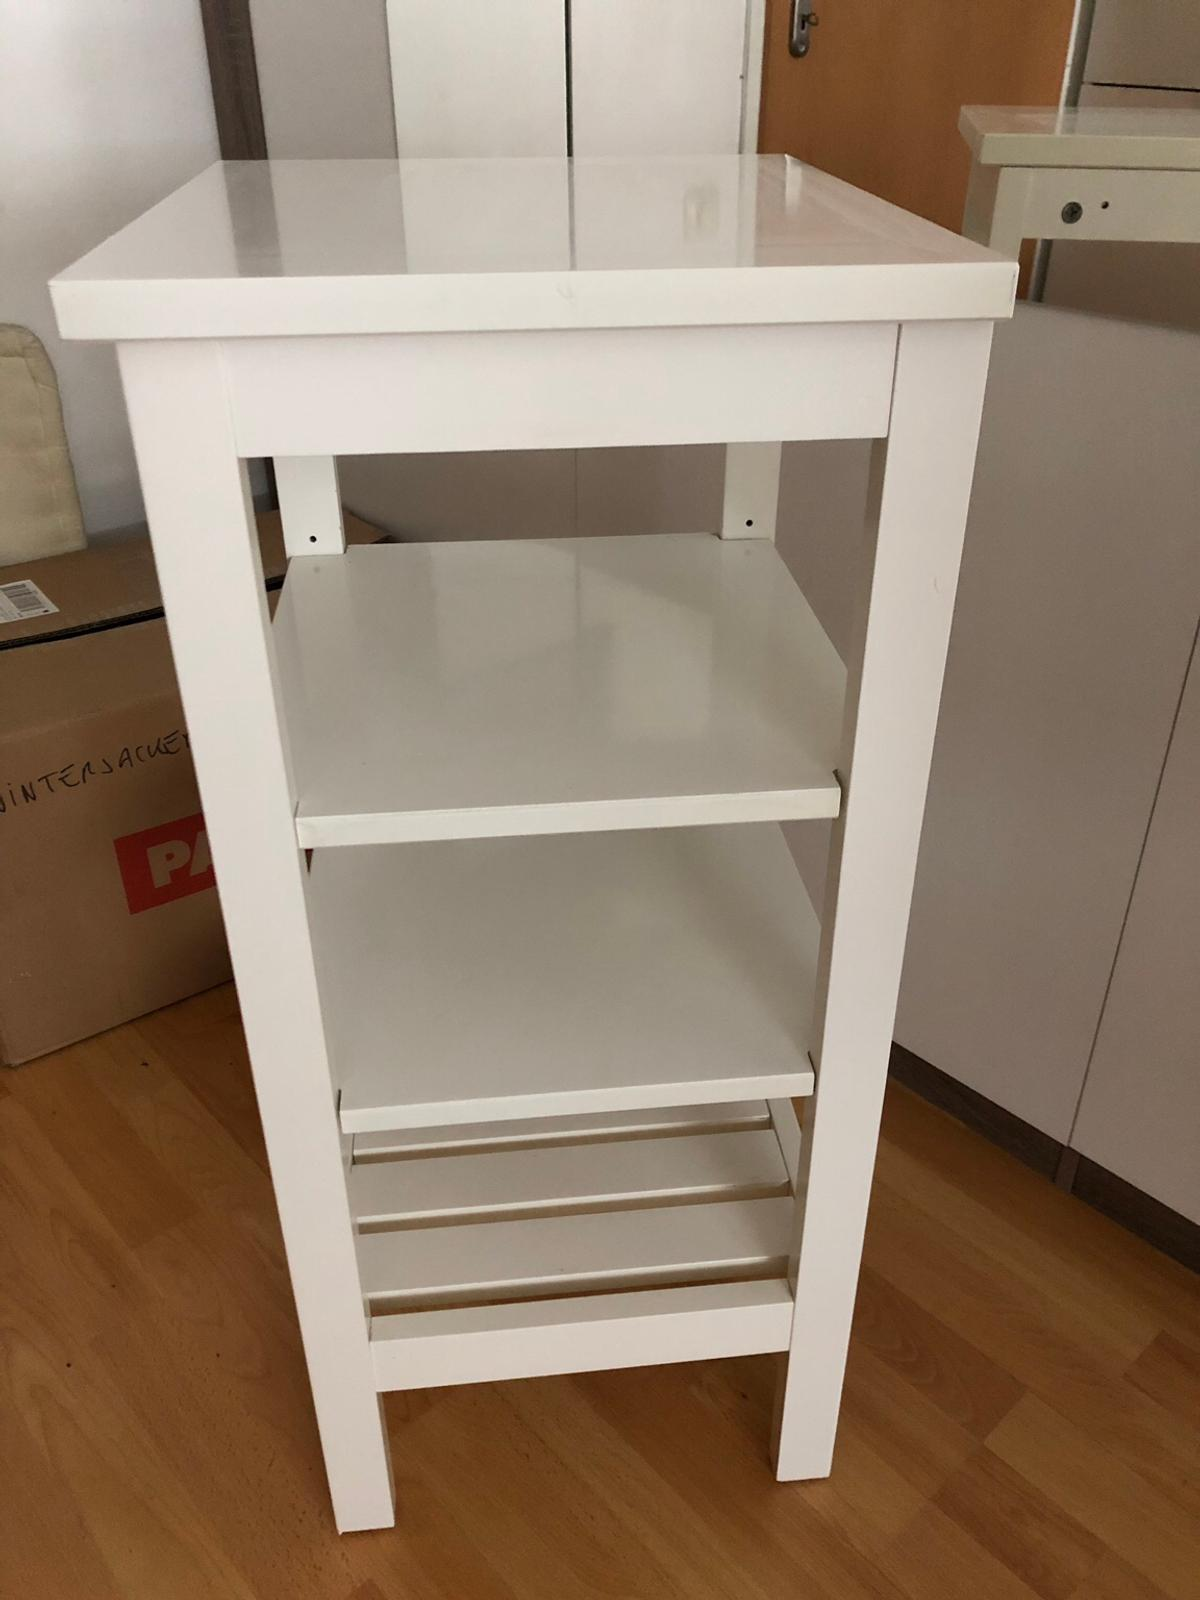 Ikea Hemnes Bad Regal Badezimmer In 6020 Innsbruck For 25 00 For Sale Shpock